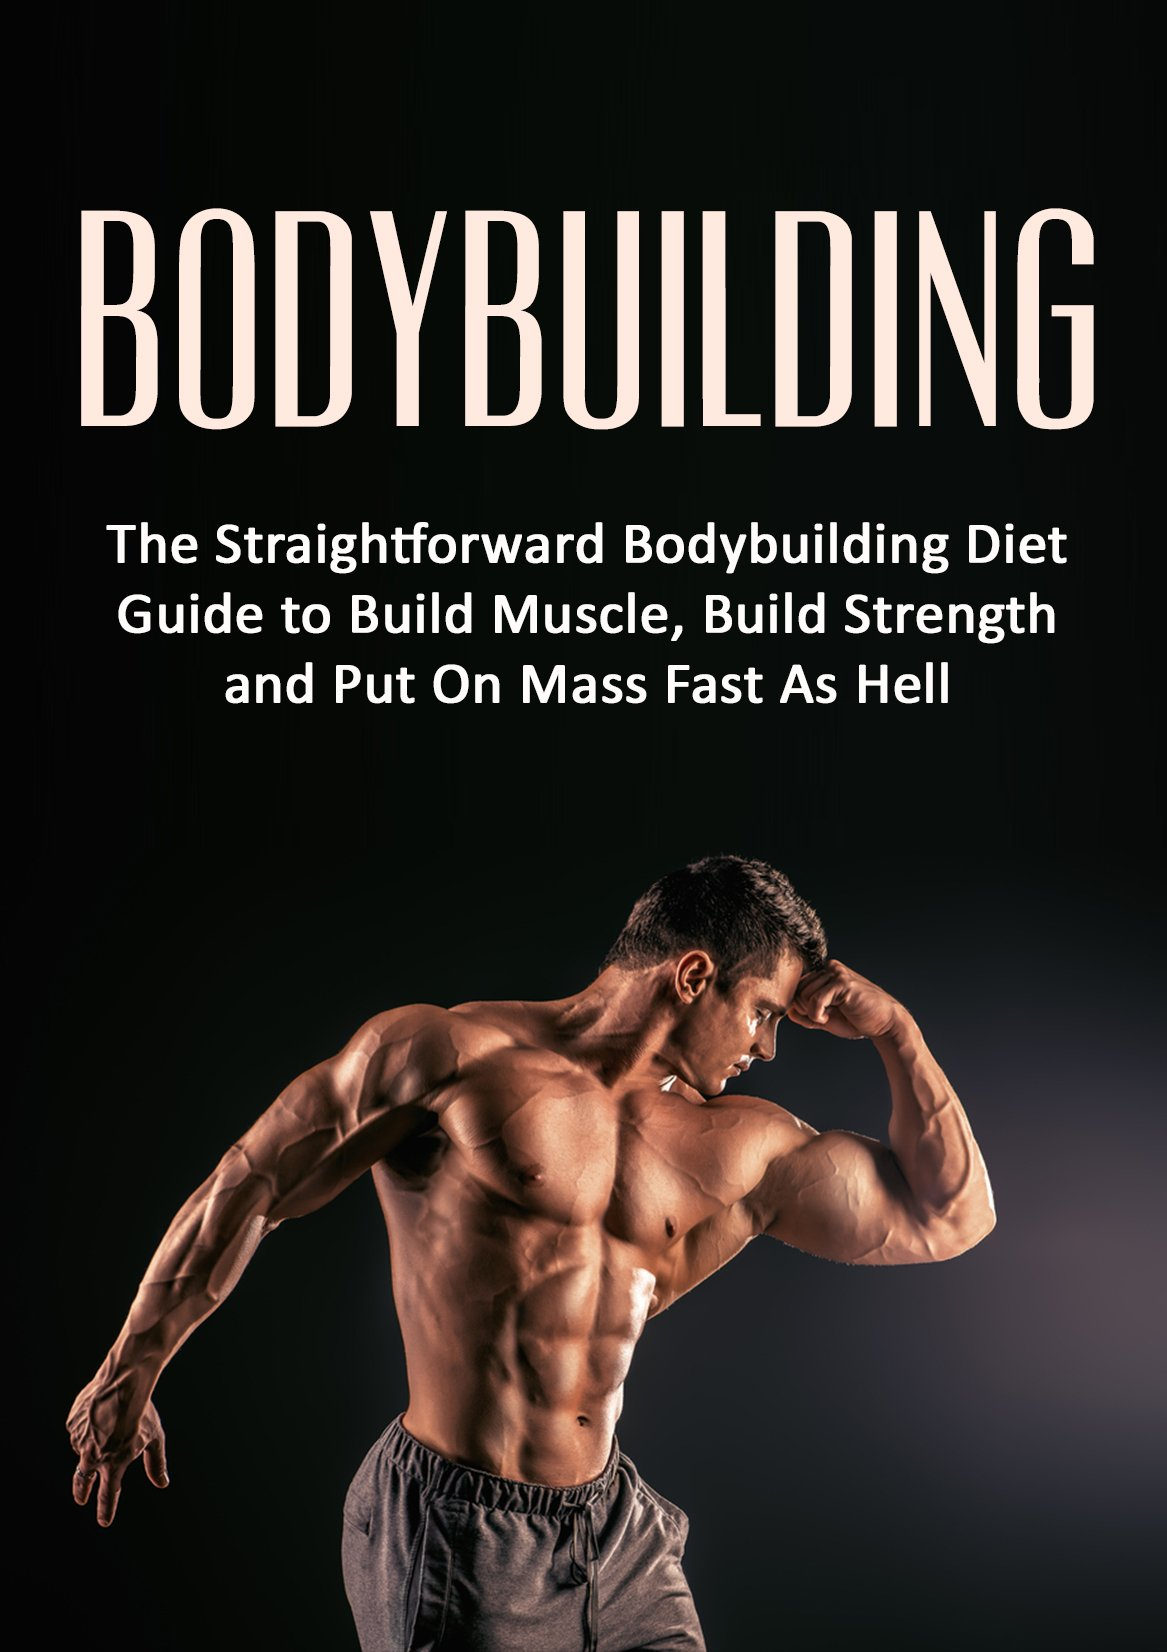 Bodybuilding  The Straightforward Bodybuilding Diet Guide To Build Muscle Build Strength And Put On Mass Fast As Hell  Fitness Bodybuilding Nutrition ... Loss Strength Training   English Edition